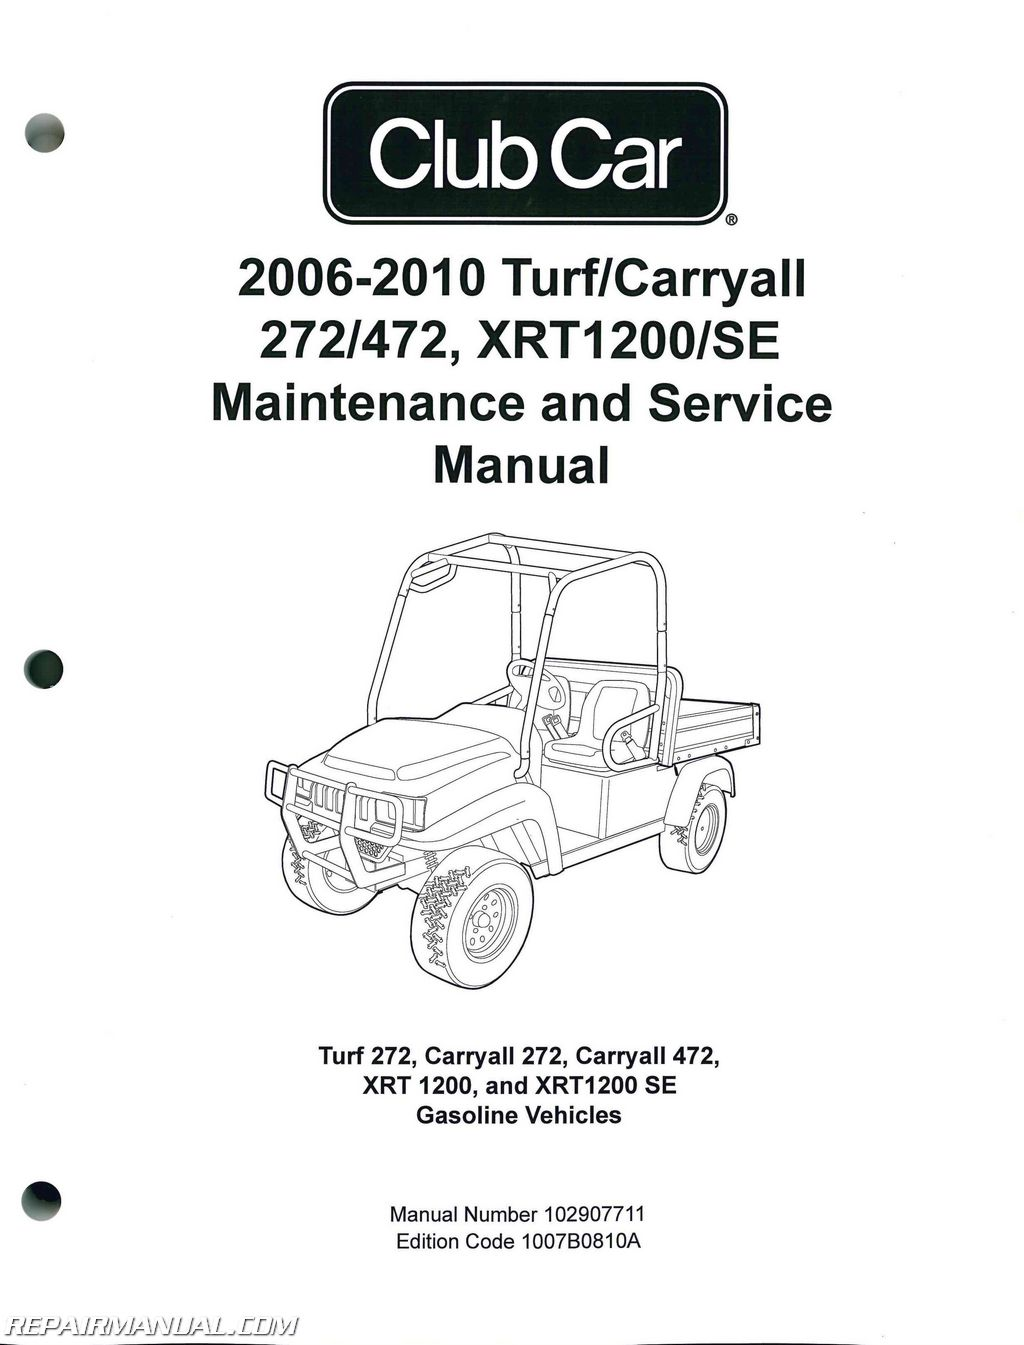 2006 2010 club car turf carryall 272 472 xrt1200 se turf 272 rh  repairmanual com